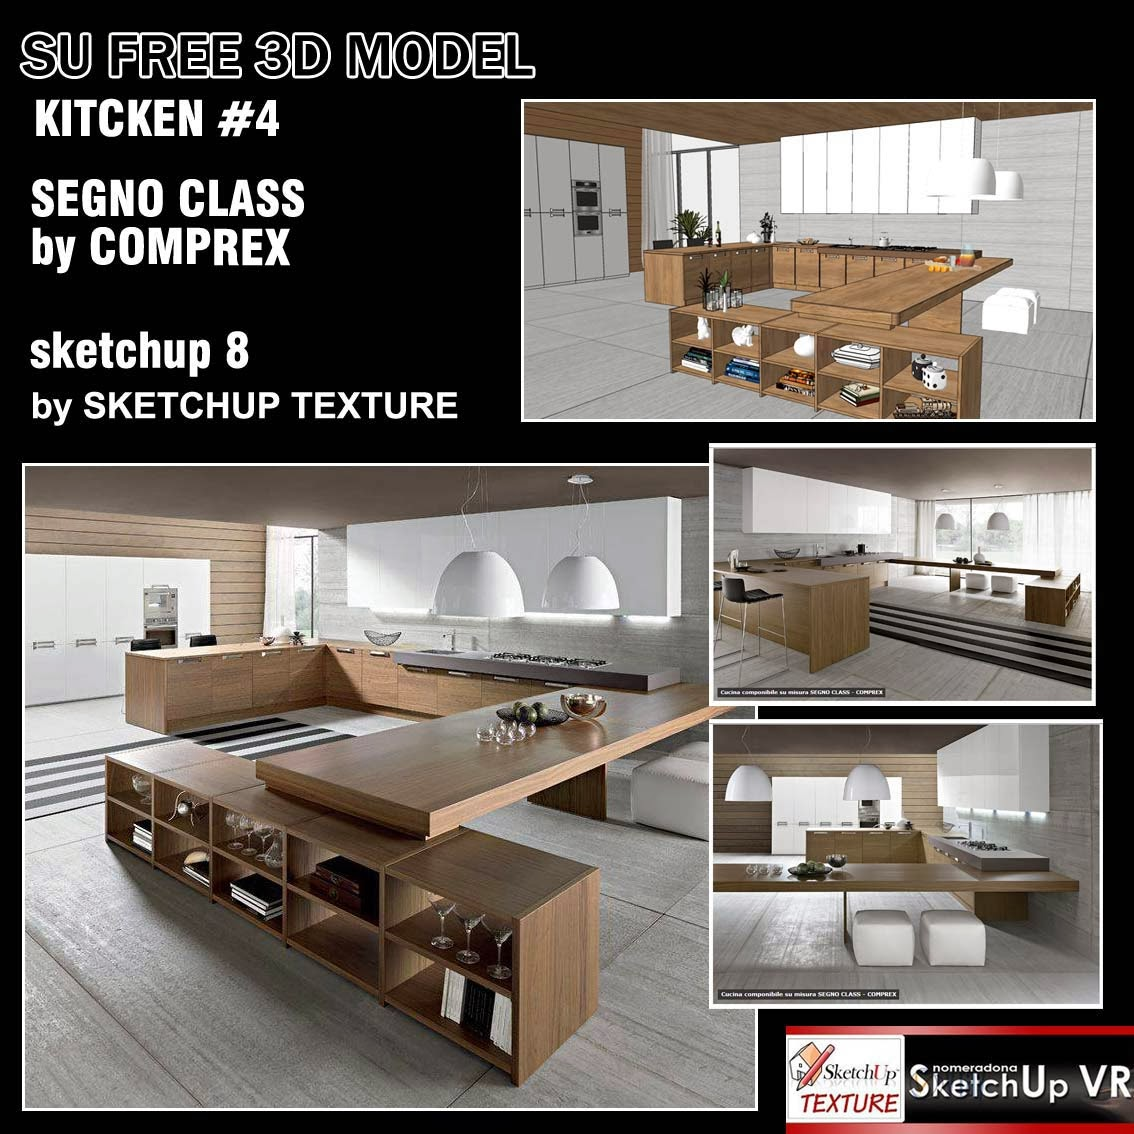 Sketchup texture sketchup model kitchen for Model kitchen design